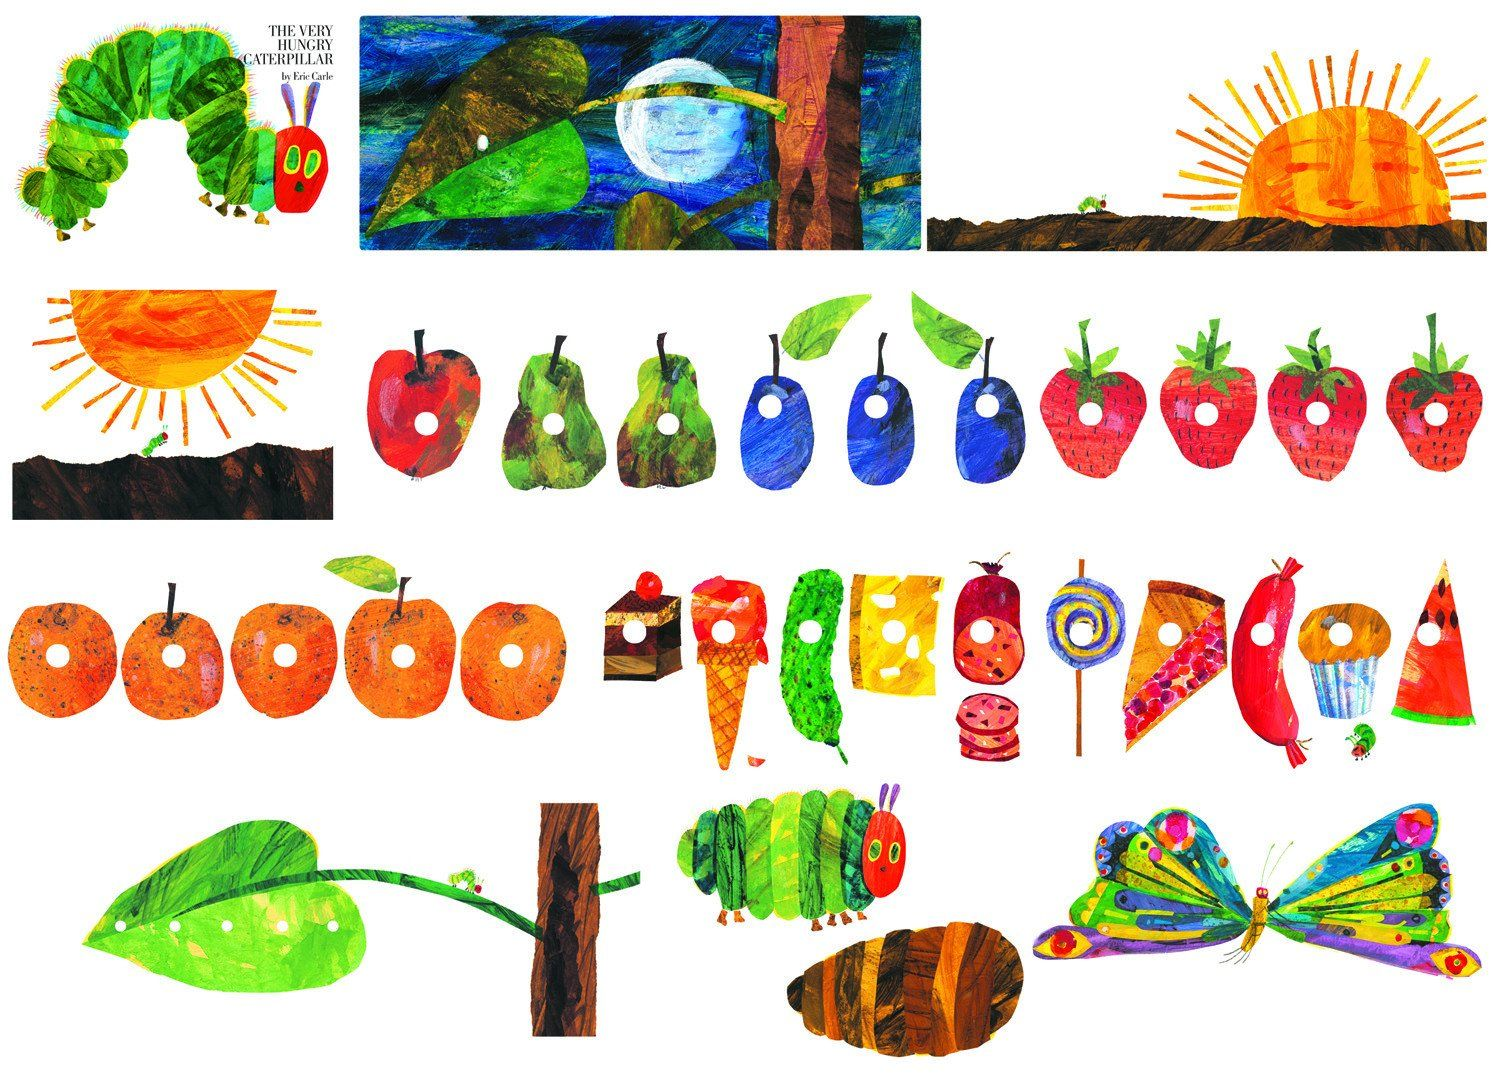 Image Result For Very Hungry Caterpillar Clipart Felt Boards